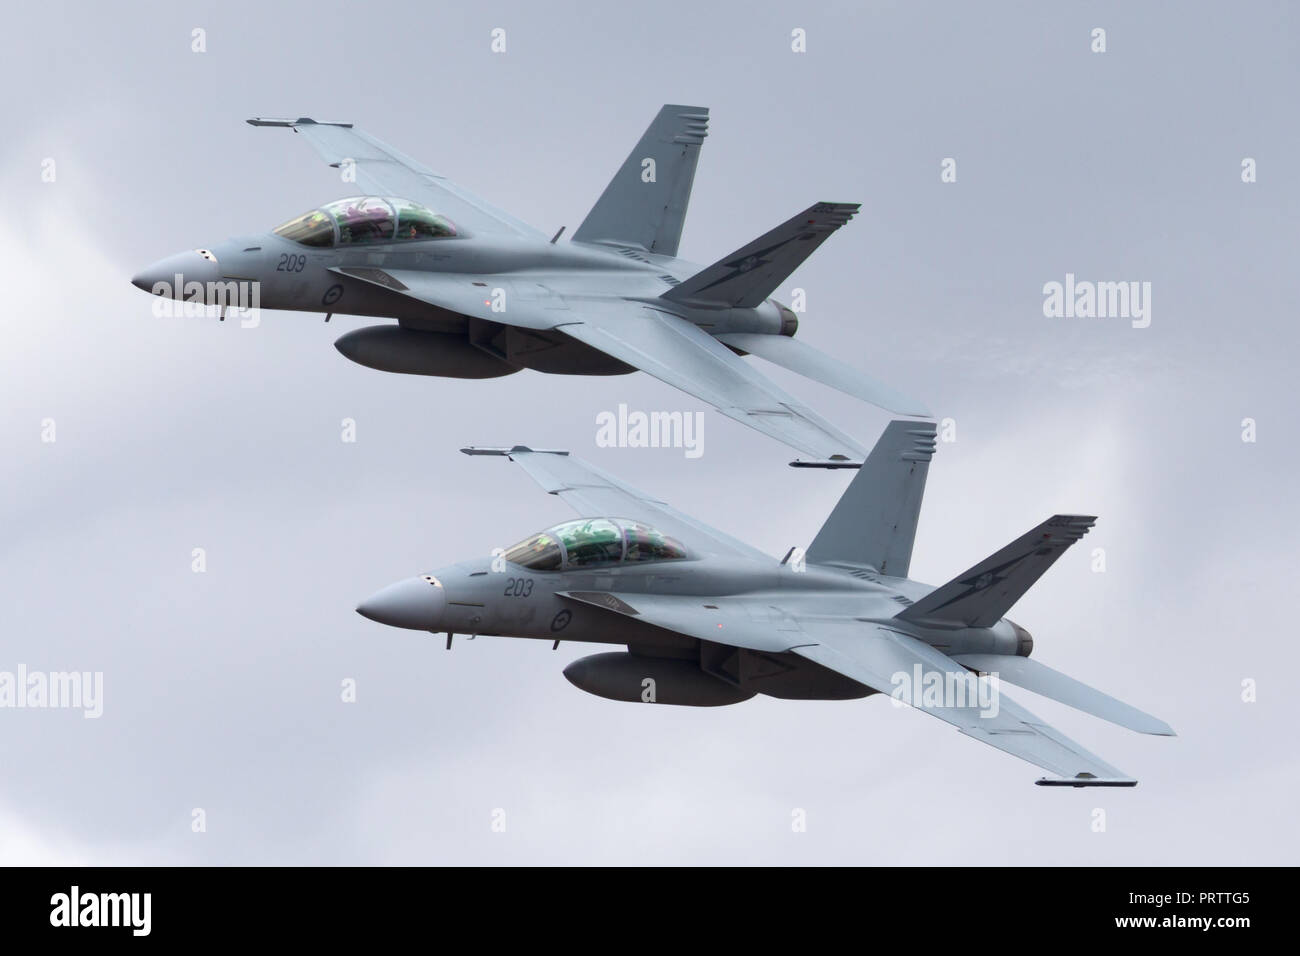 Two Royal Australian Air Force (RAAF) Boeing F/A-18F Super Hornet multirole fighter aircraft flying in formation. - Stock Image